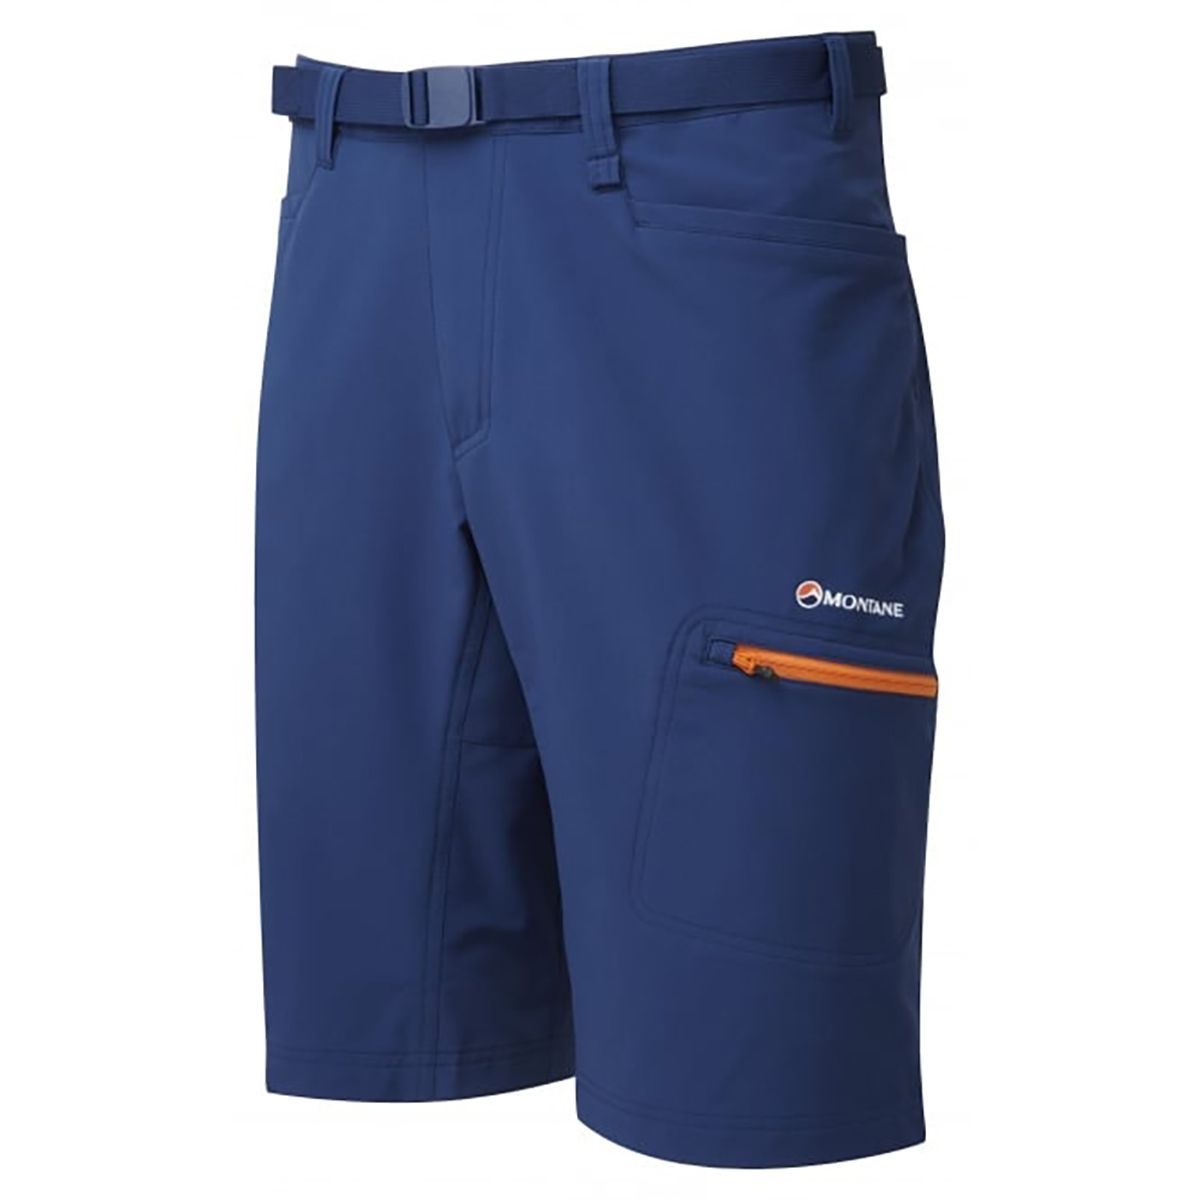 MONTANE Dynastretch Shorts M antarctic blue